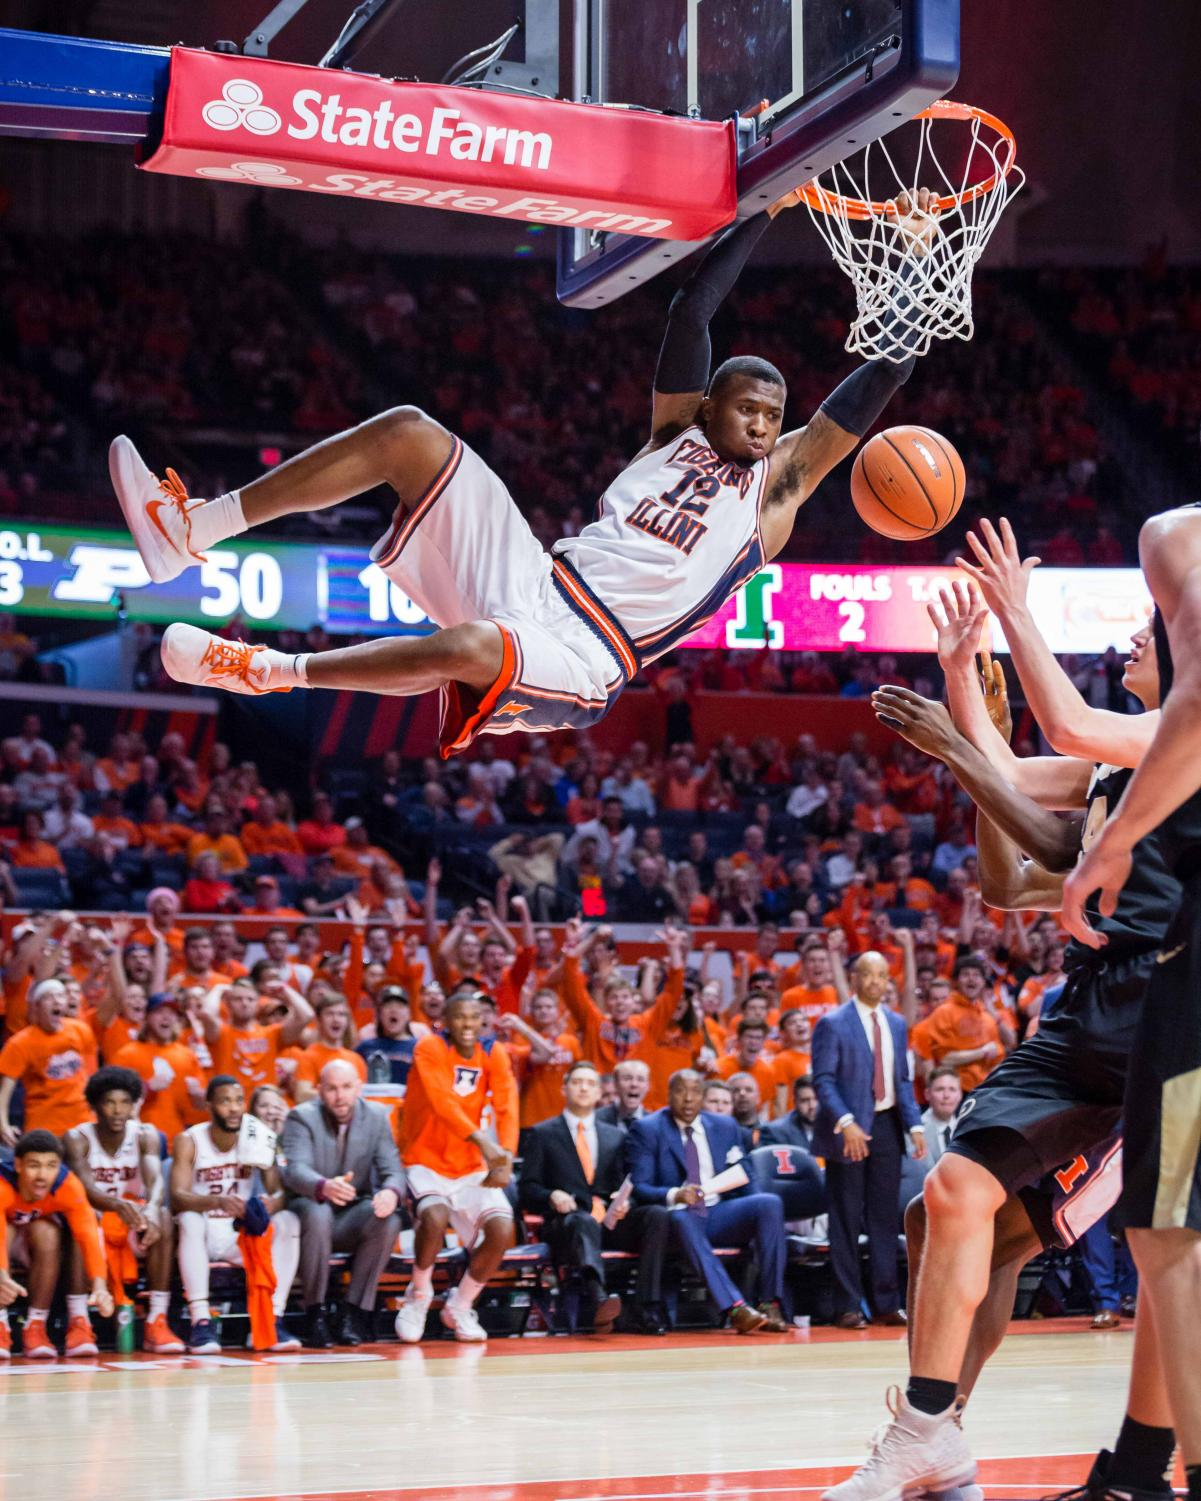 Illinois forward Leron Black (12) dunks the ball during the game against Purdue at the State Farm Center on Thursday, Feb. 22, 2018. The Illini lost 93-86.